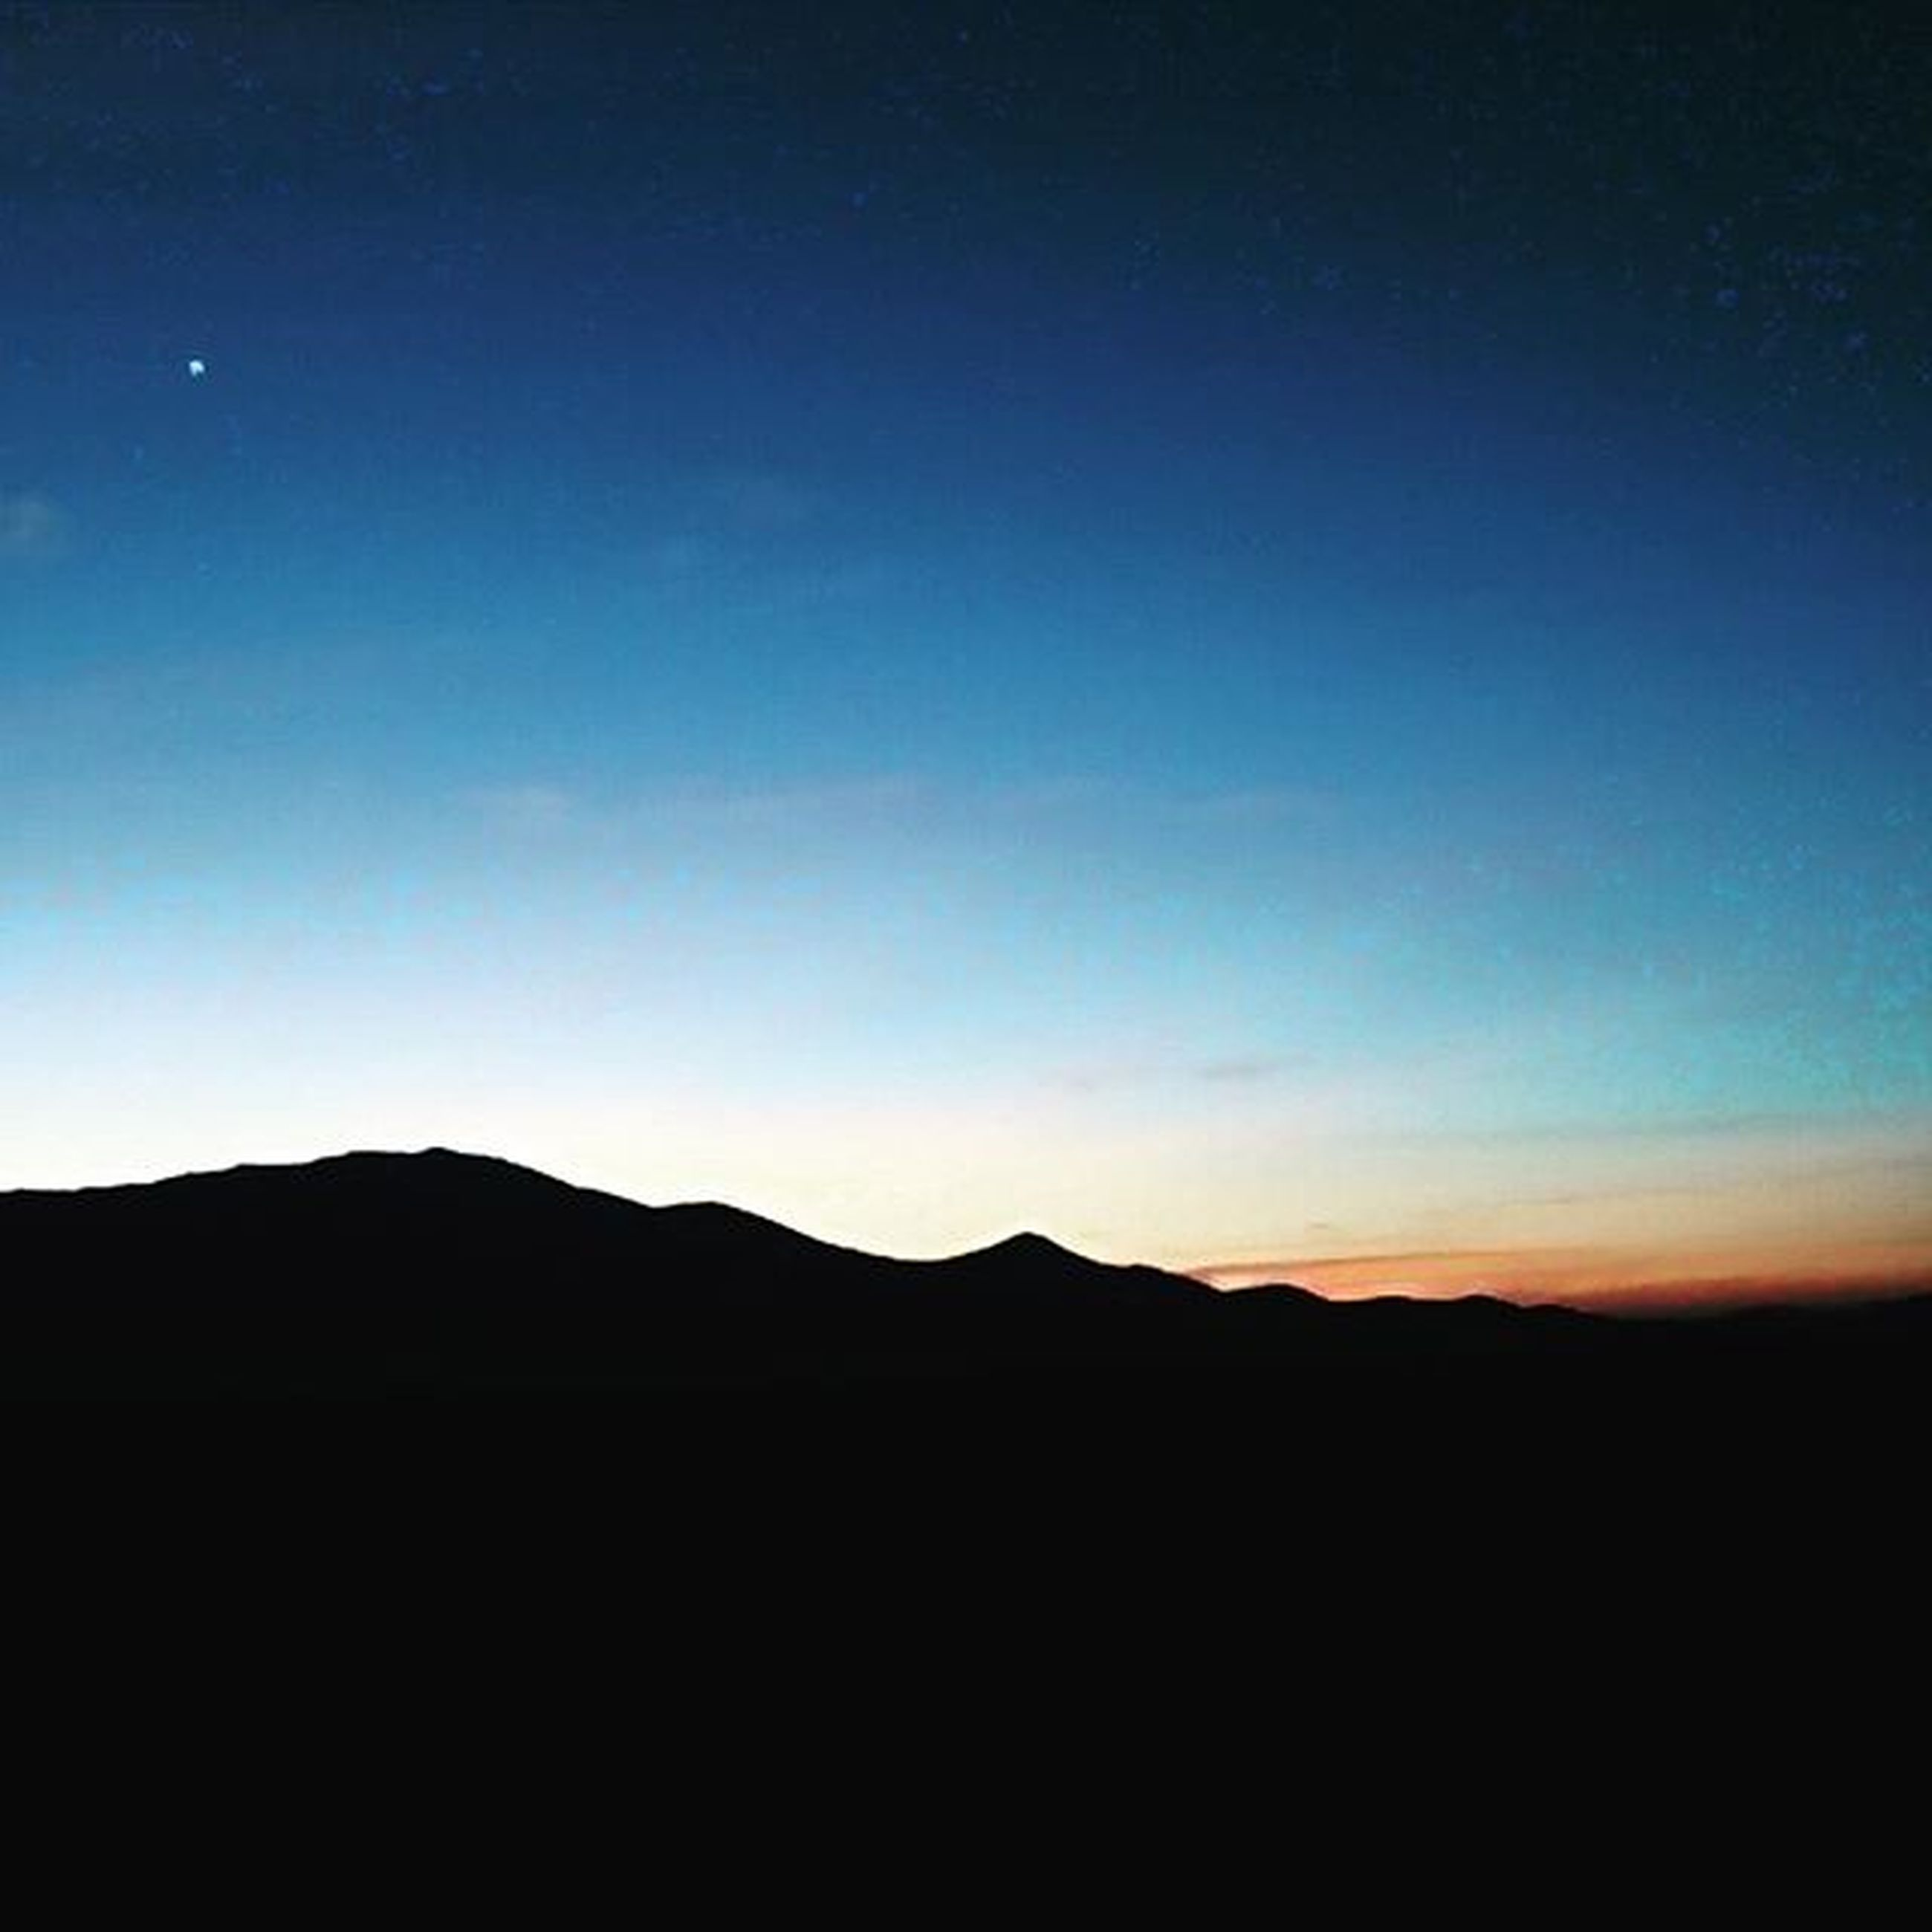 copy space, silhouette, tranquil scene, scenics, tranquility, mountain, clear sky, beauty in nature, mountain range, nature, landscape, blue, dark, idyllic, dusk, sunset, sky, non-urban scene, majestic, outline